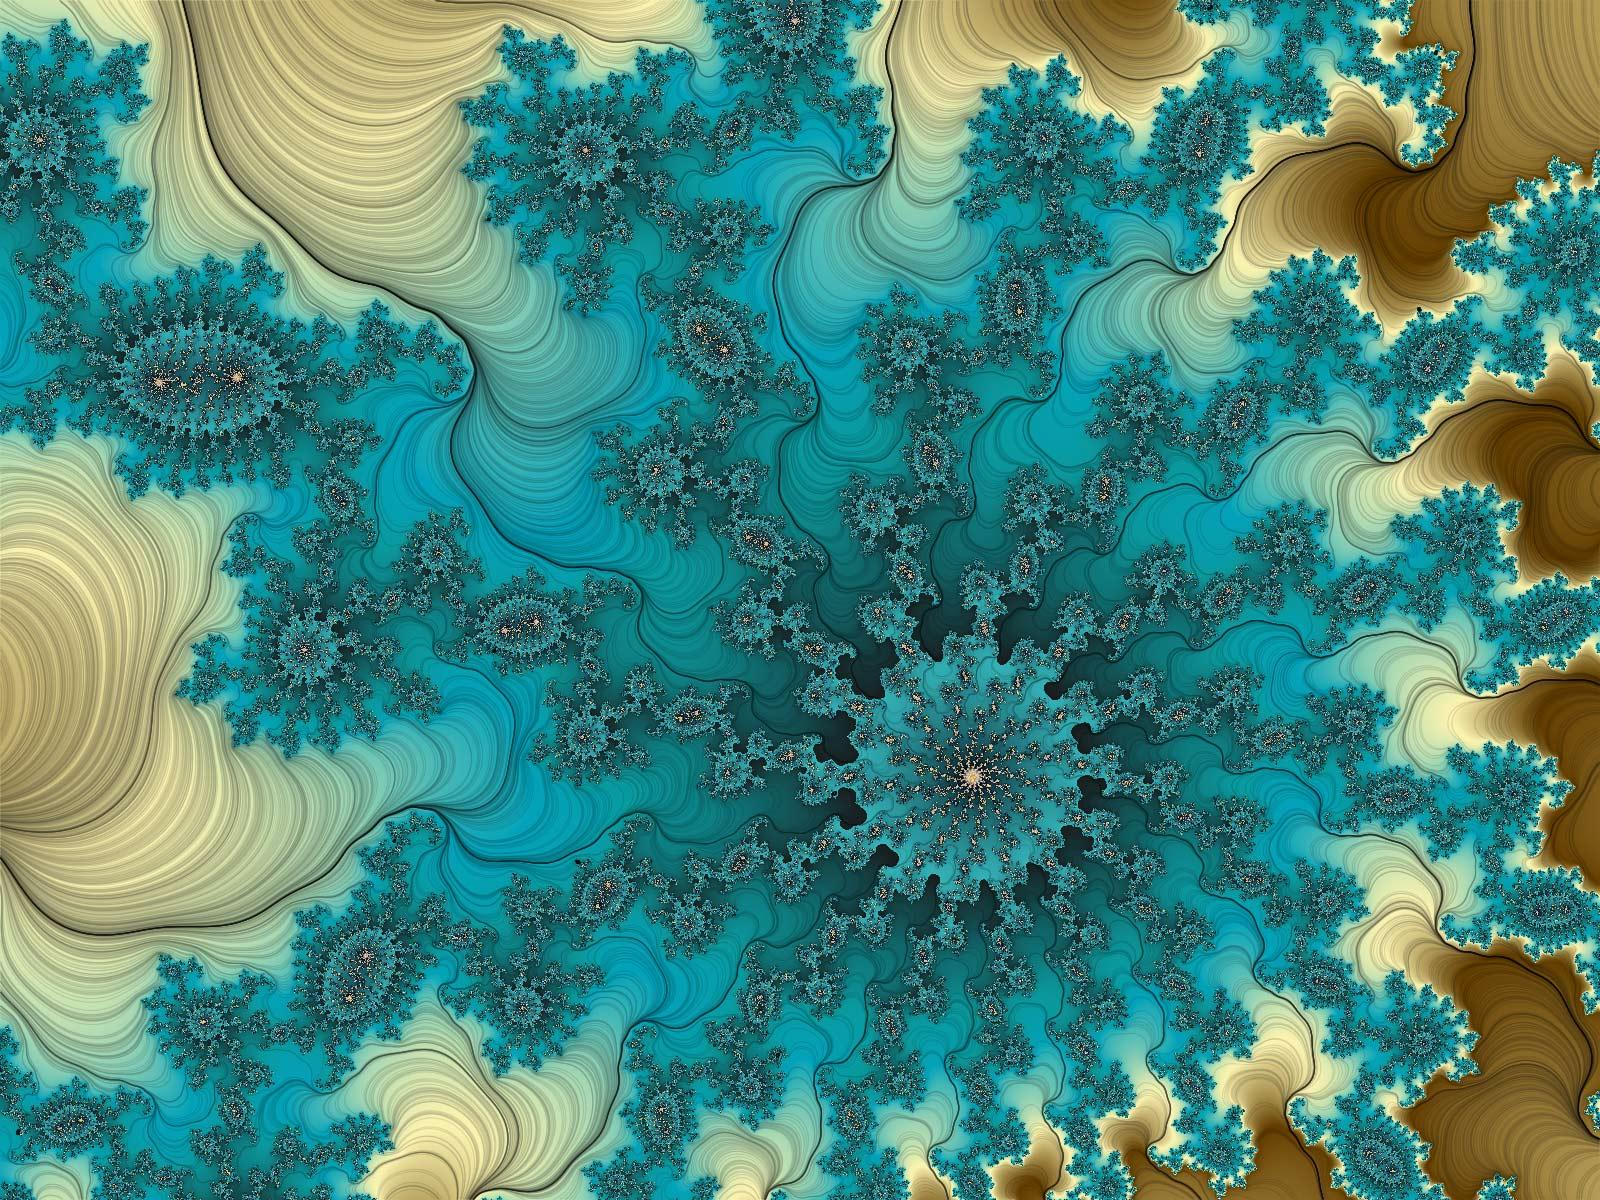 Best Fractal HQ Wallpapers {part 4} - Xaxor